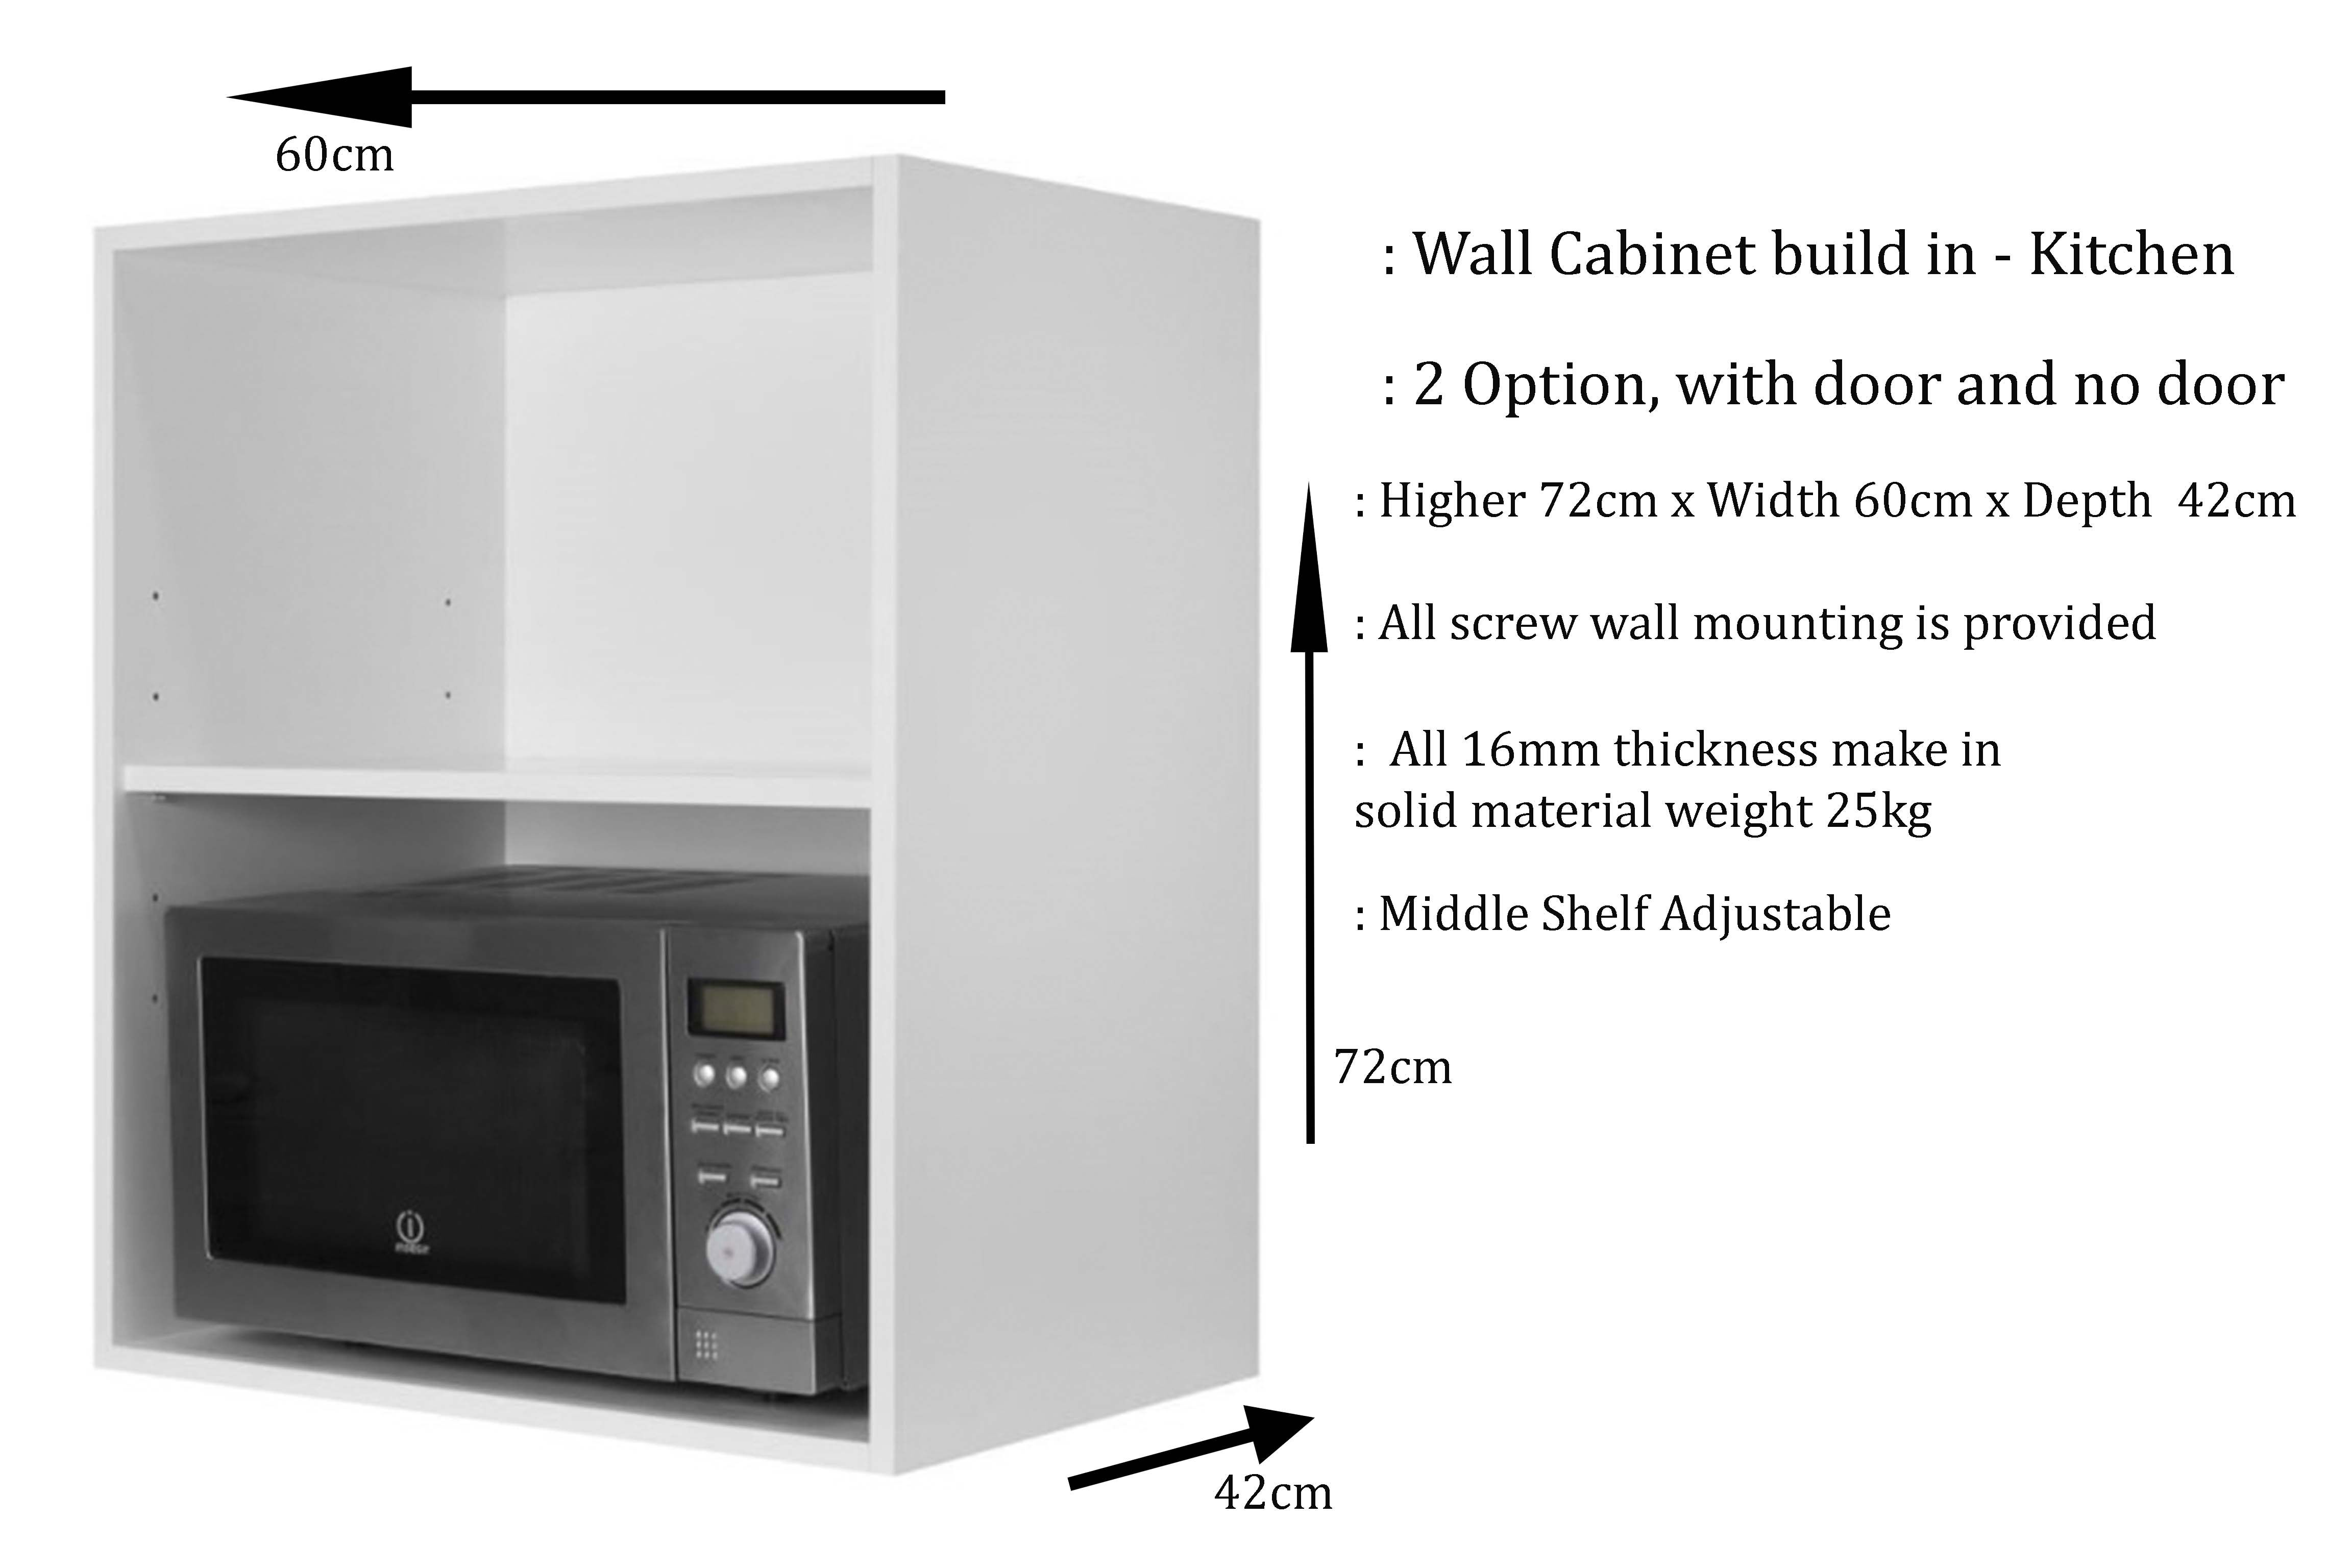 Kitchen Microwave Wall Cabinets Buy Sell Online Kitchen Organizers With Cheap Price Lazada